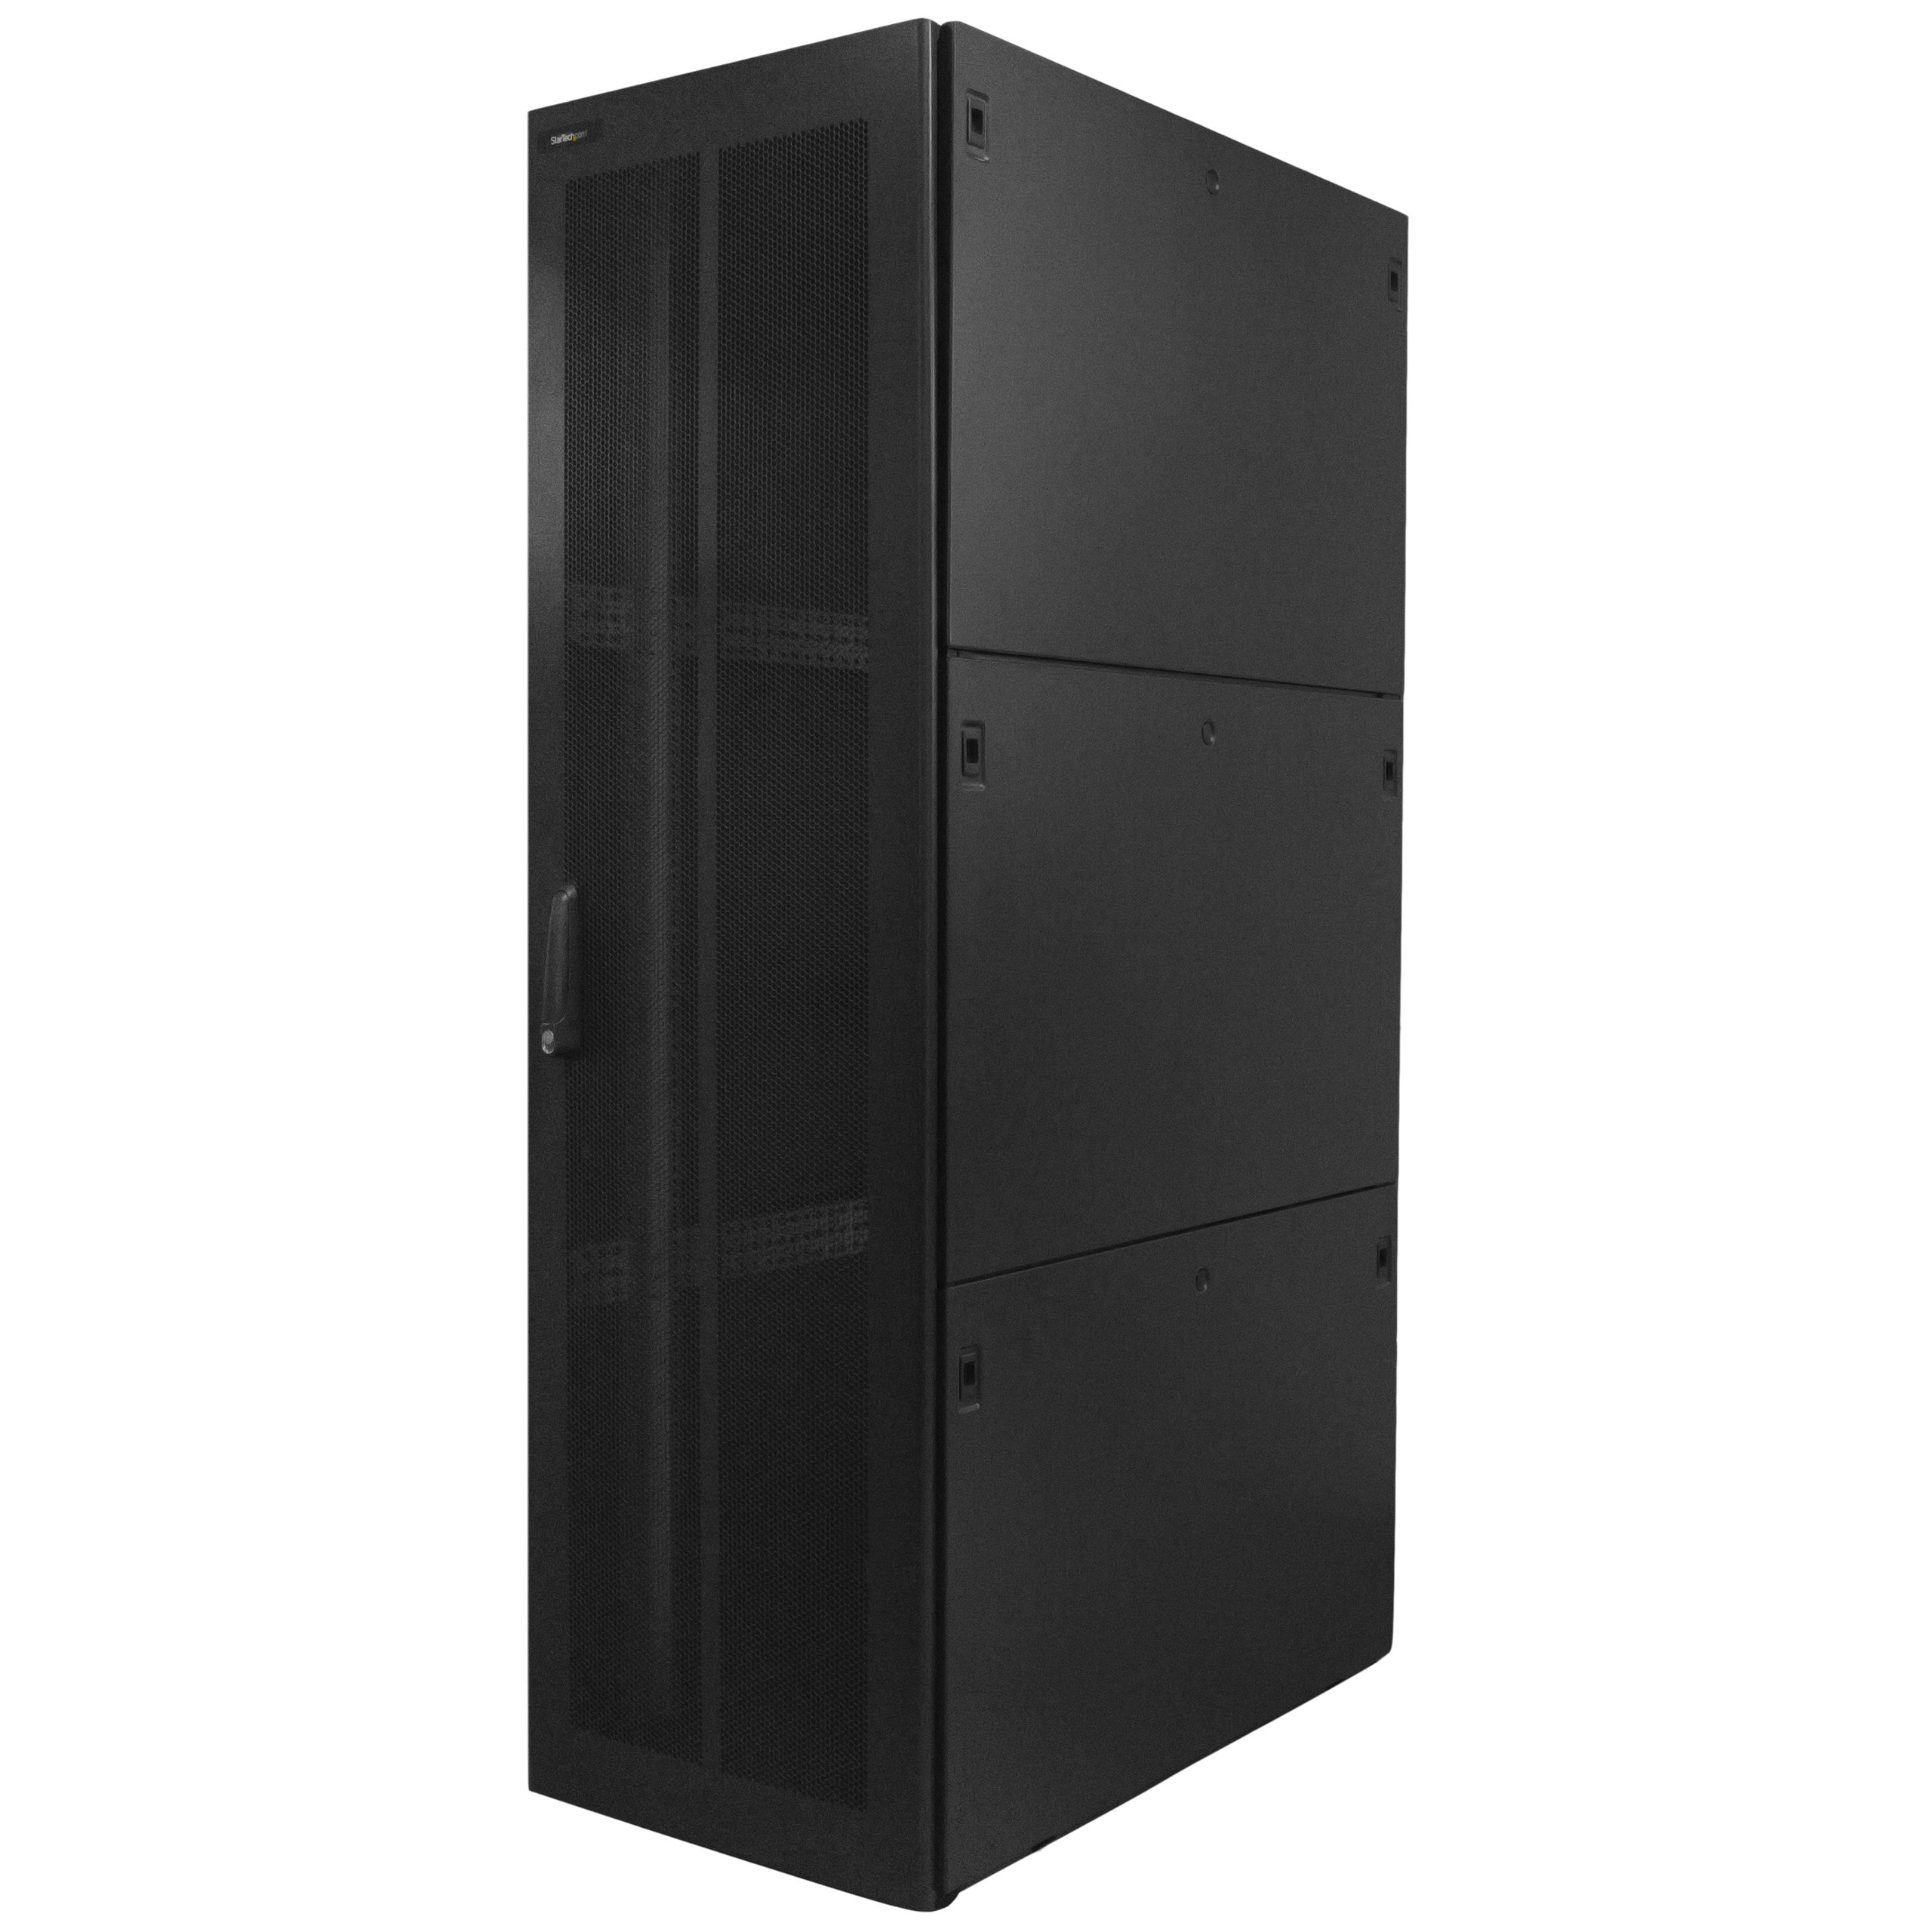 StarTech.com 42U Rack Enclosure Server Cabinet - 29.9 in. Deep - Split Rear Door